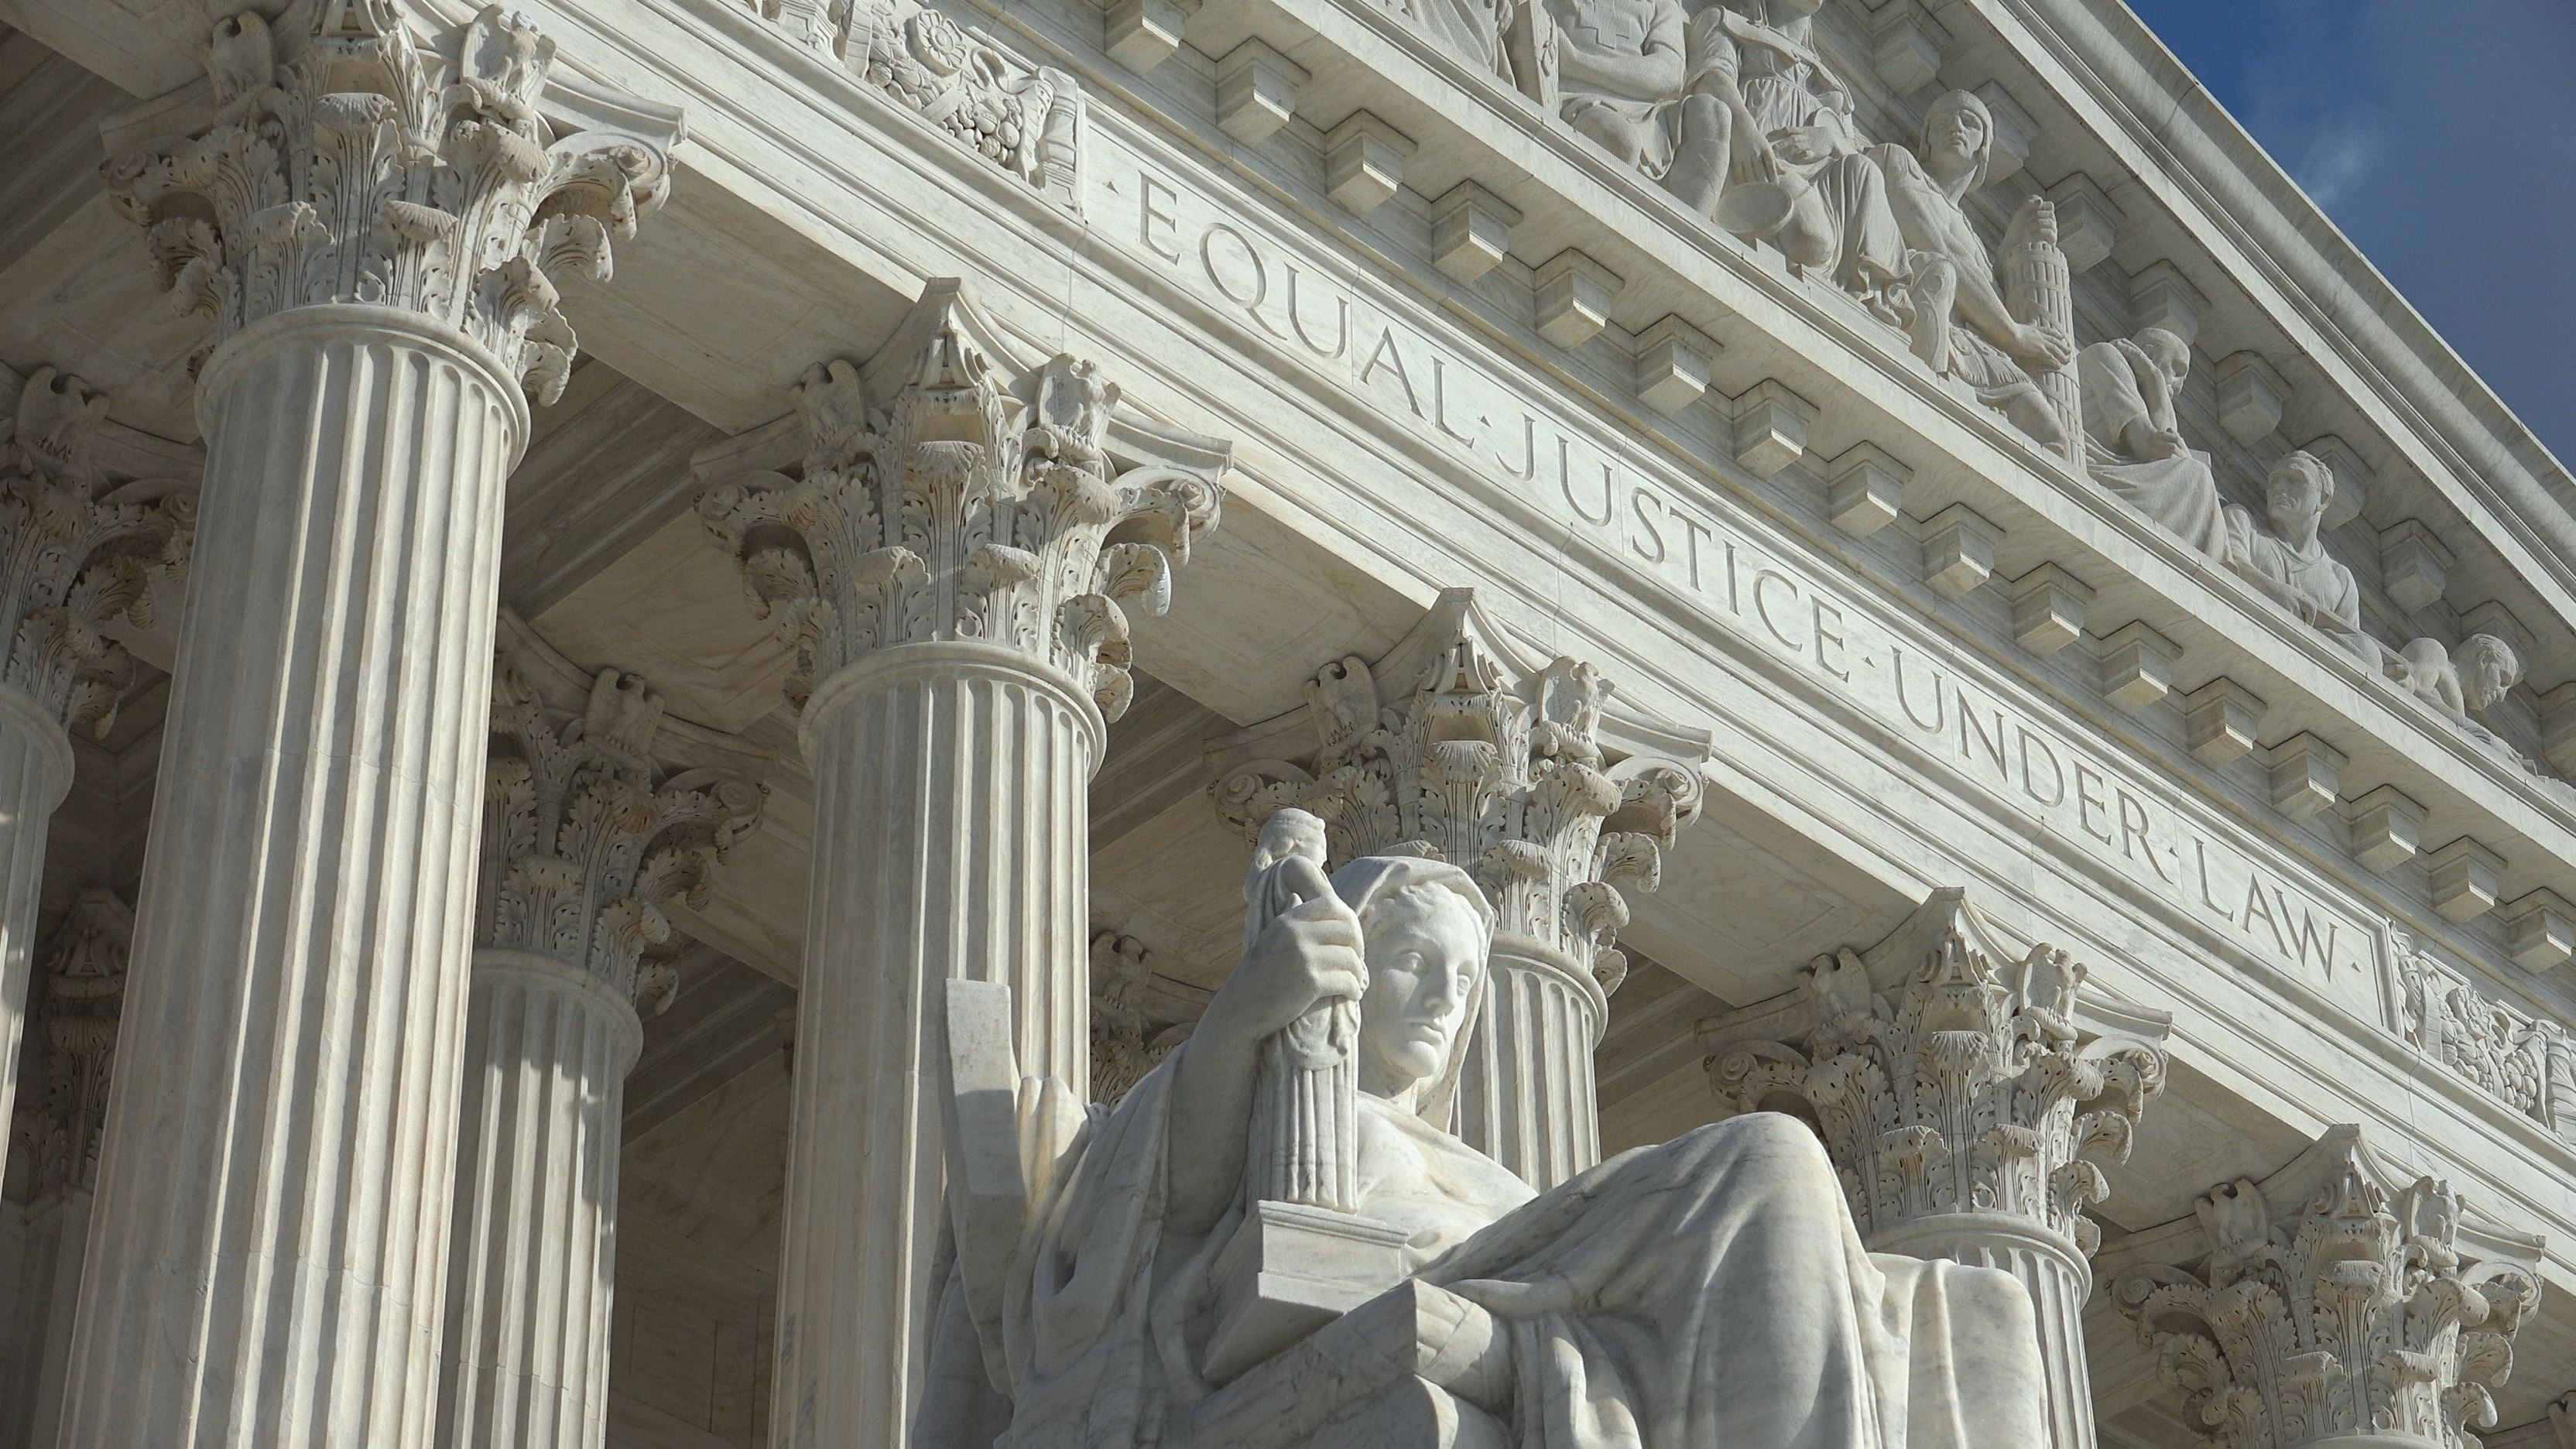 Exterior of U.S. Supreme Court building